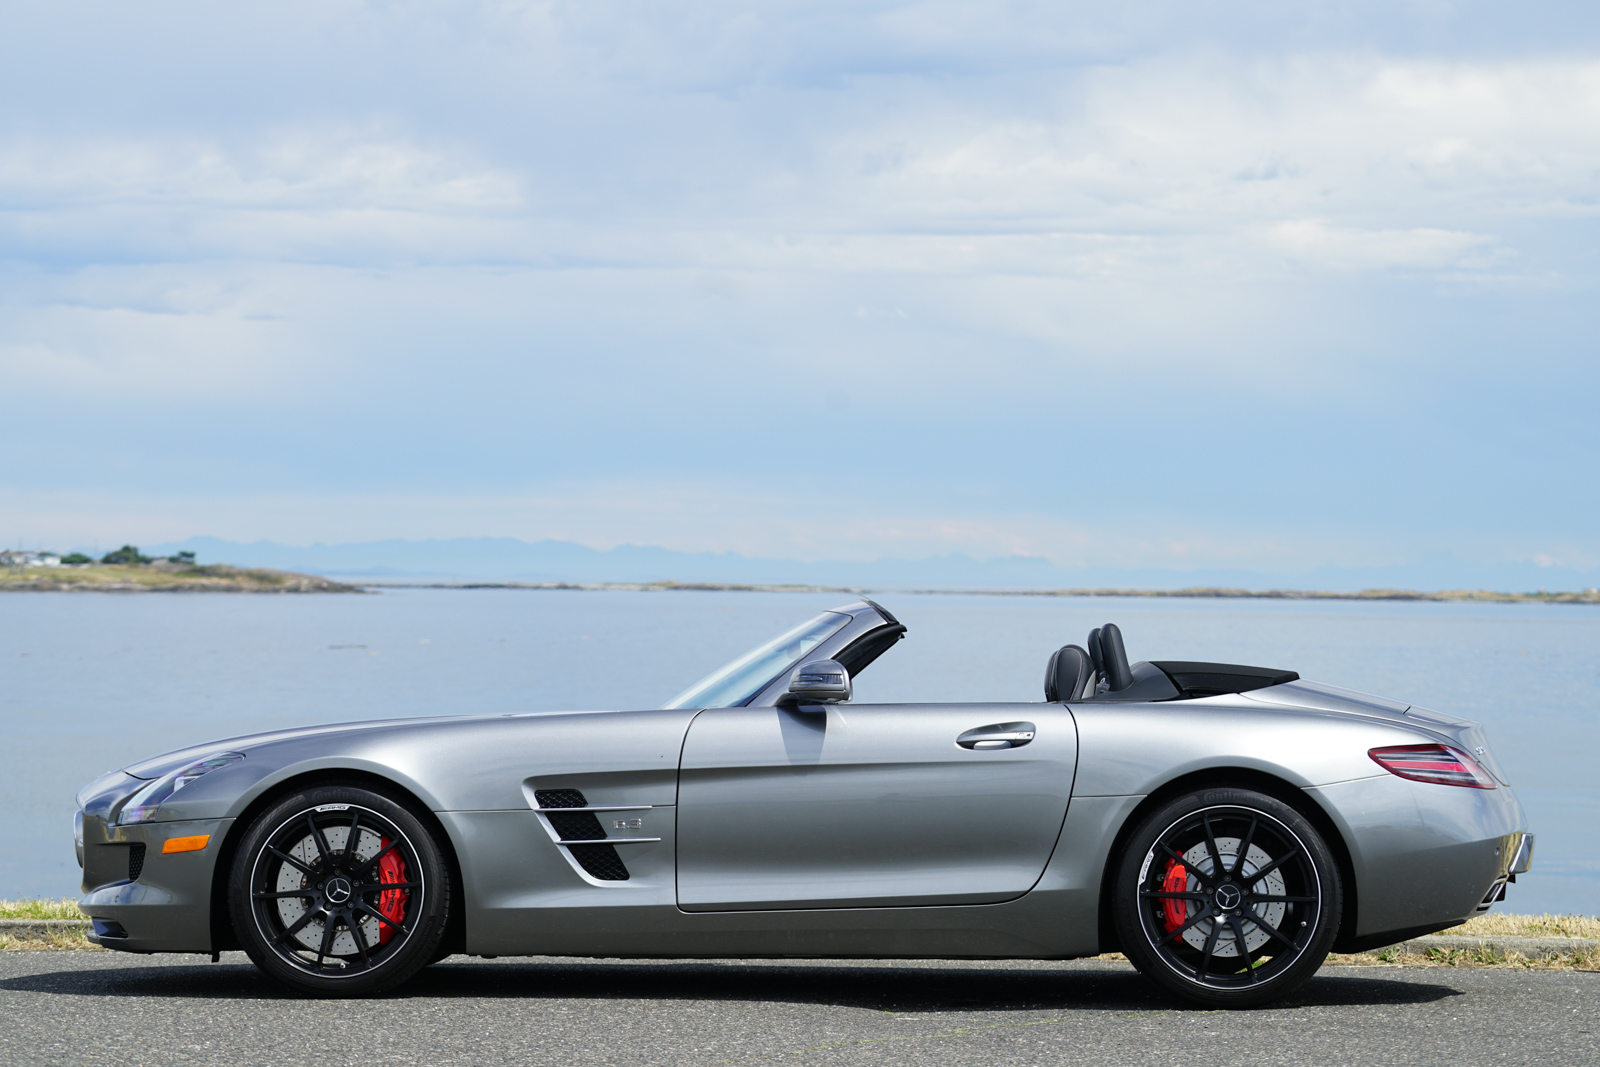 2012 mercedes benz sls amg roadster silver arrow cars ltd for Mercedes benz sls amg convertible for sale